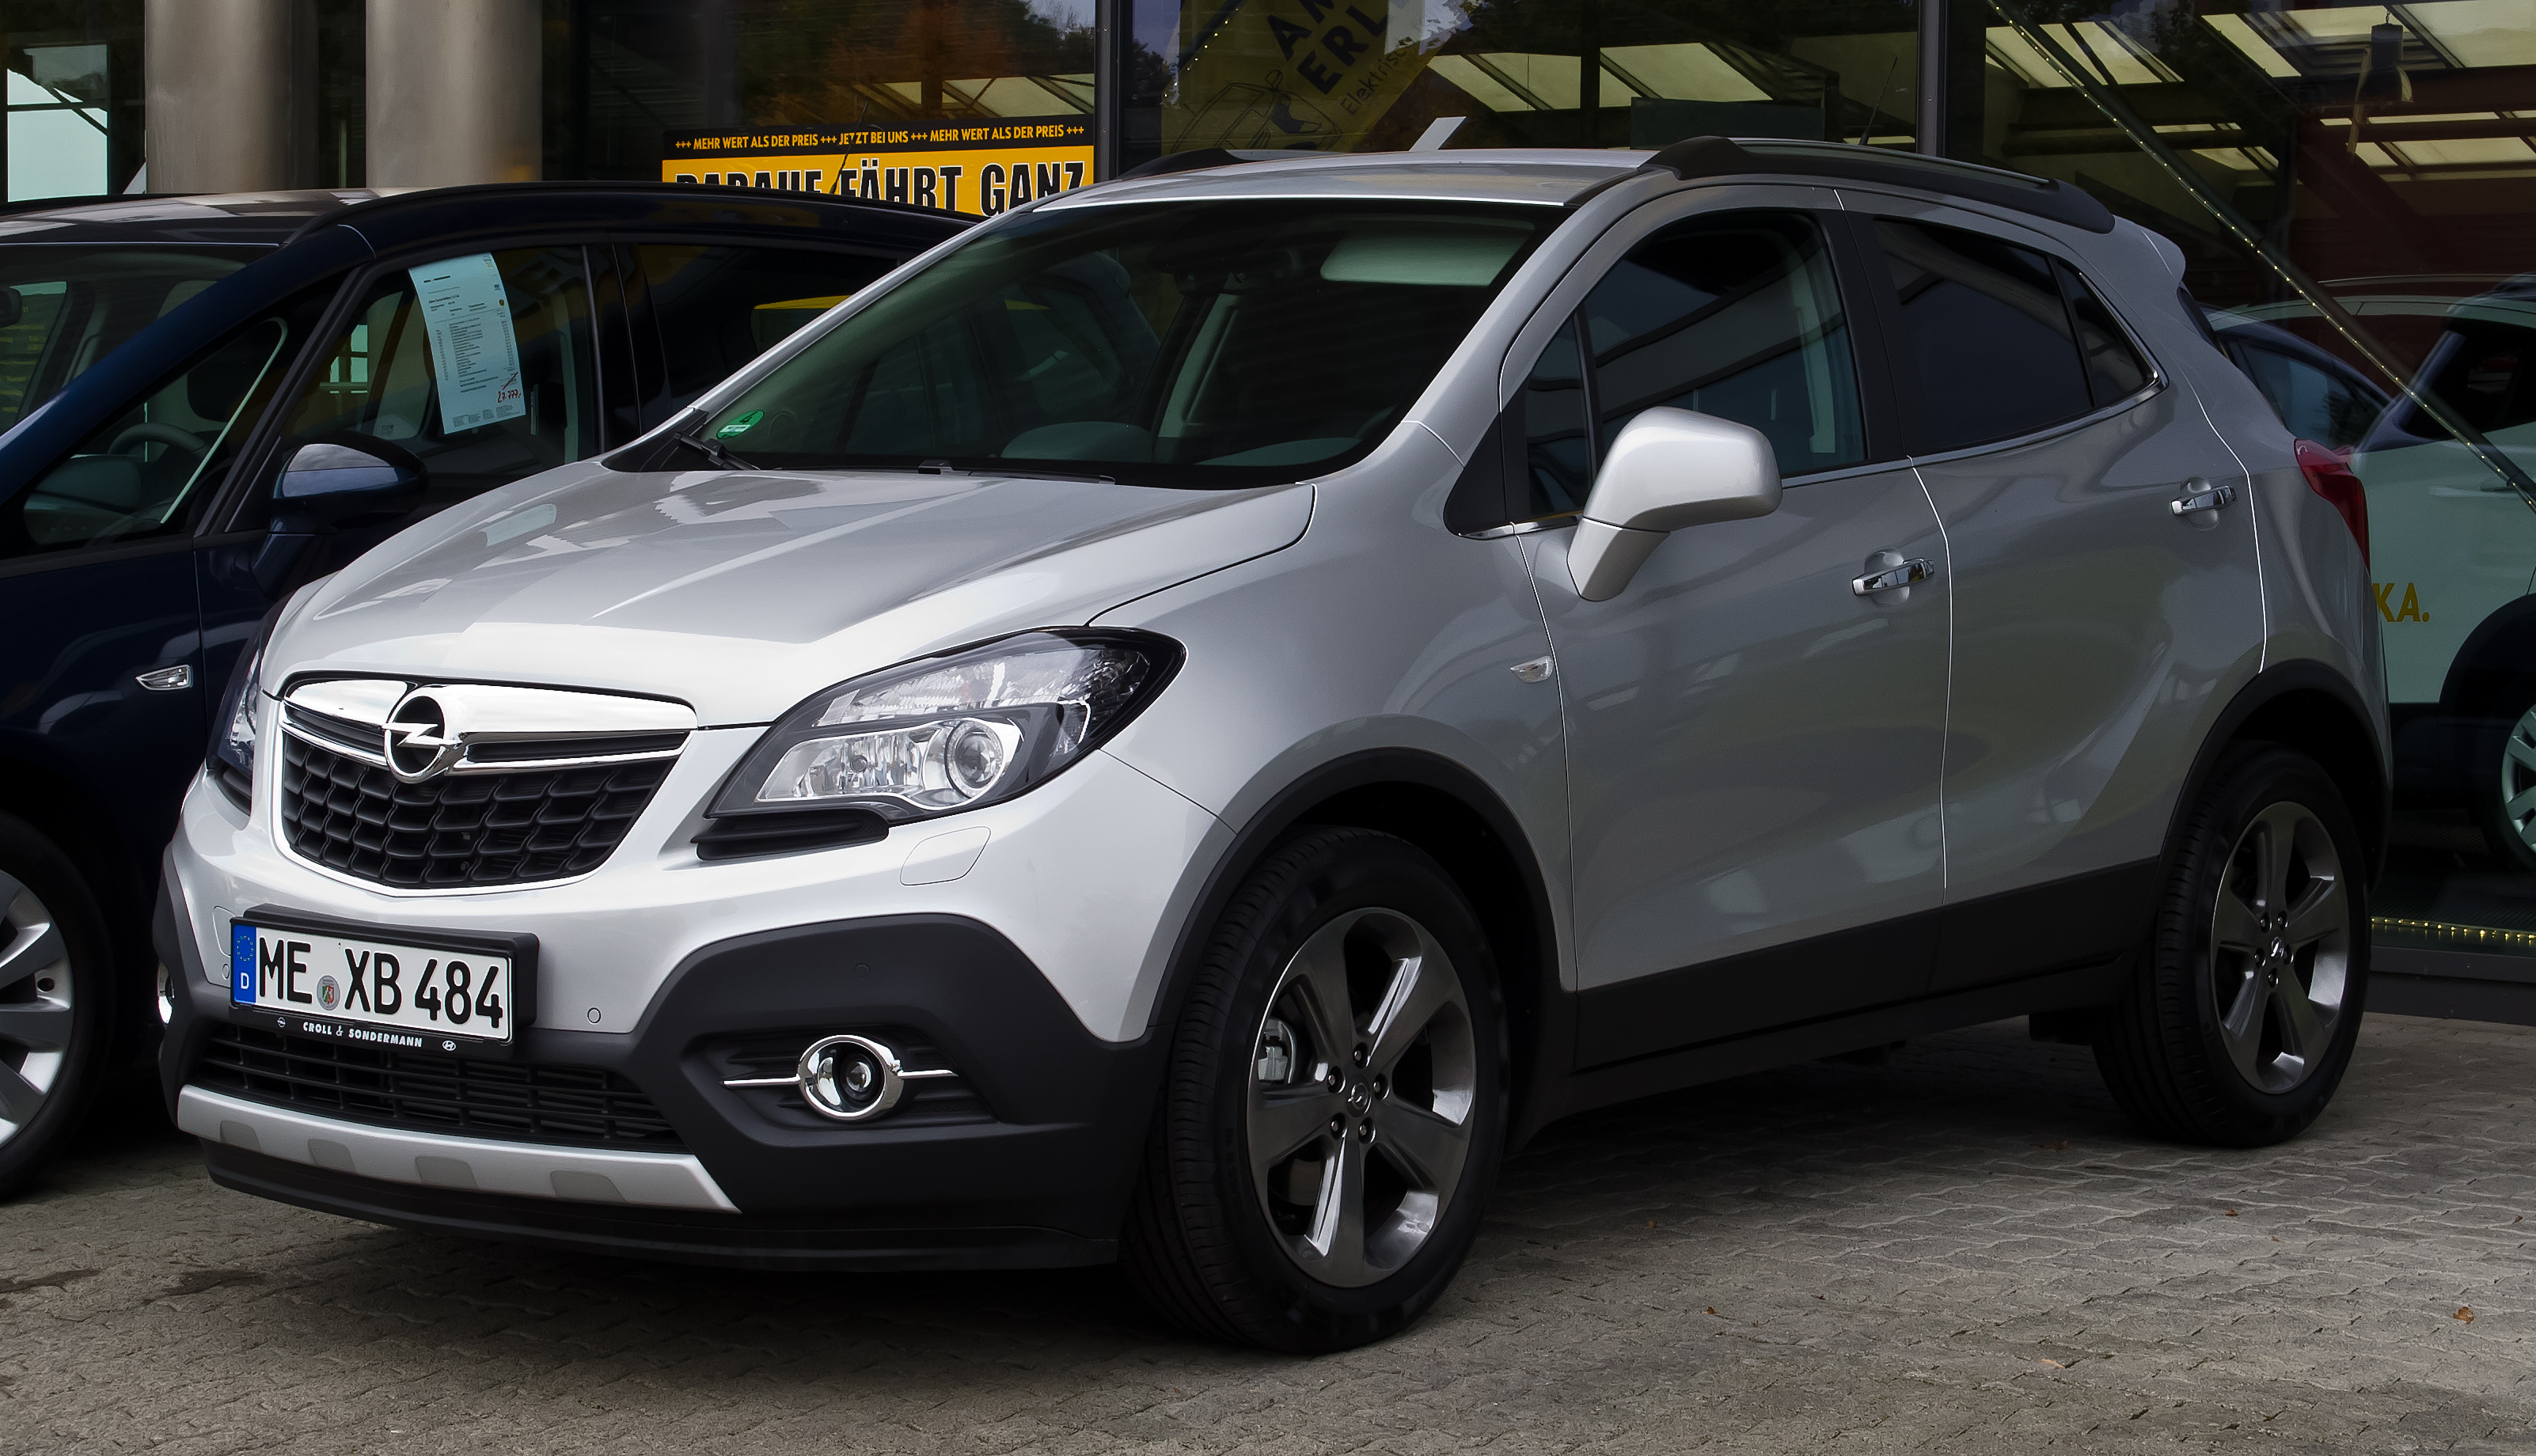 Unions Want GM To Make Mokka In Europe The Truth About Cars - Buick encore wiki